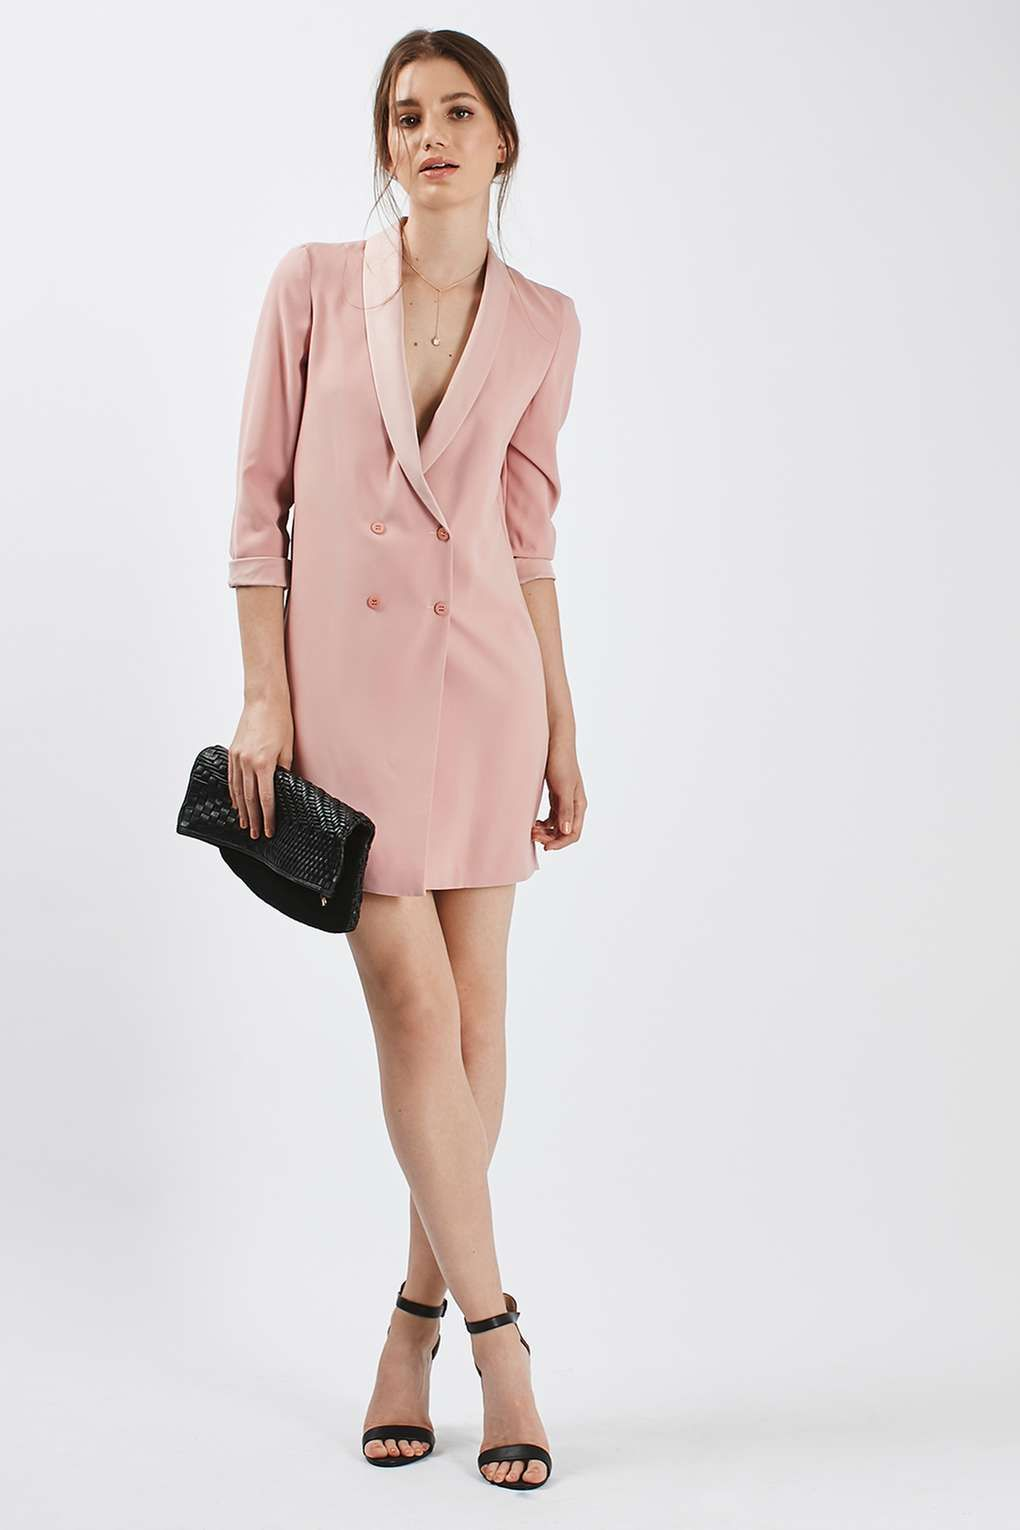 b8c1137449aef Soft Tailored Blazer Dress - Black Friday Weekend - Sale   Offers - Topshop  USA